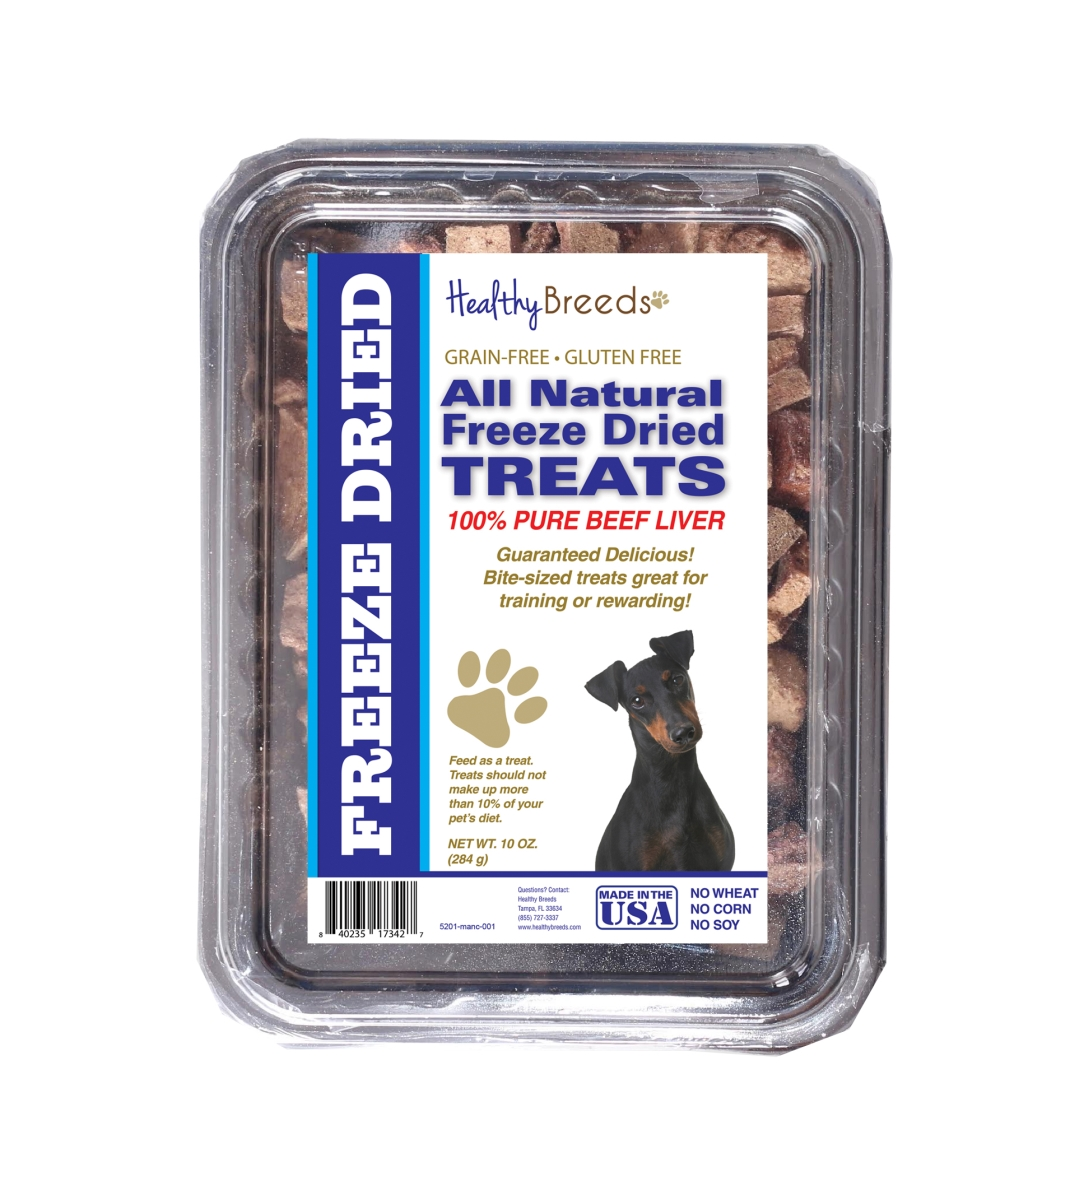 Healthy Breeds 840235173427 10 oz Manchester Terrier All Natural Freeze Dried Treats Beef Liver